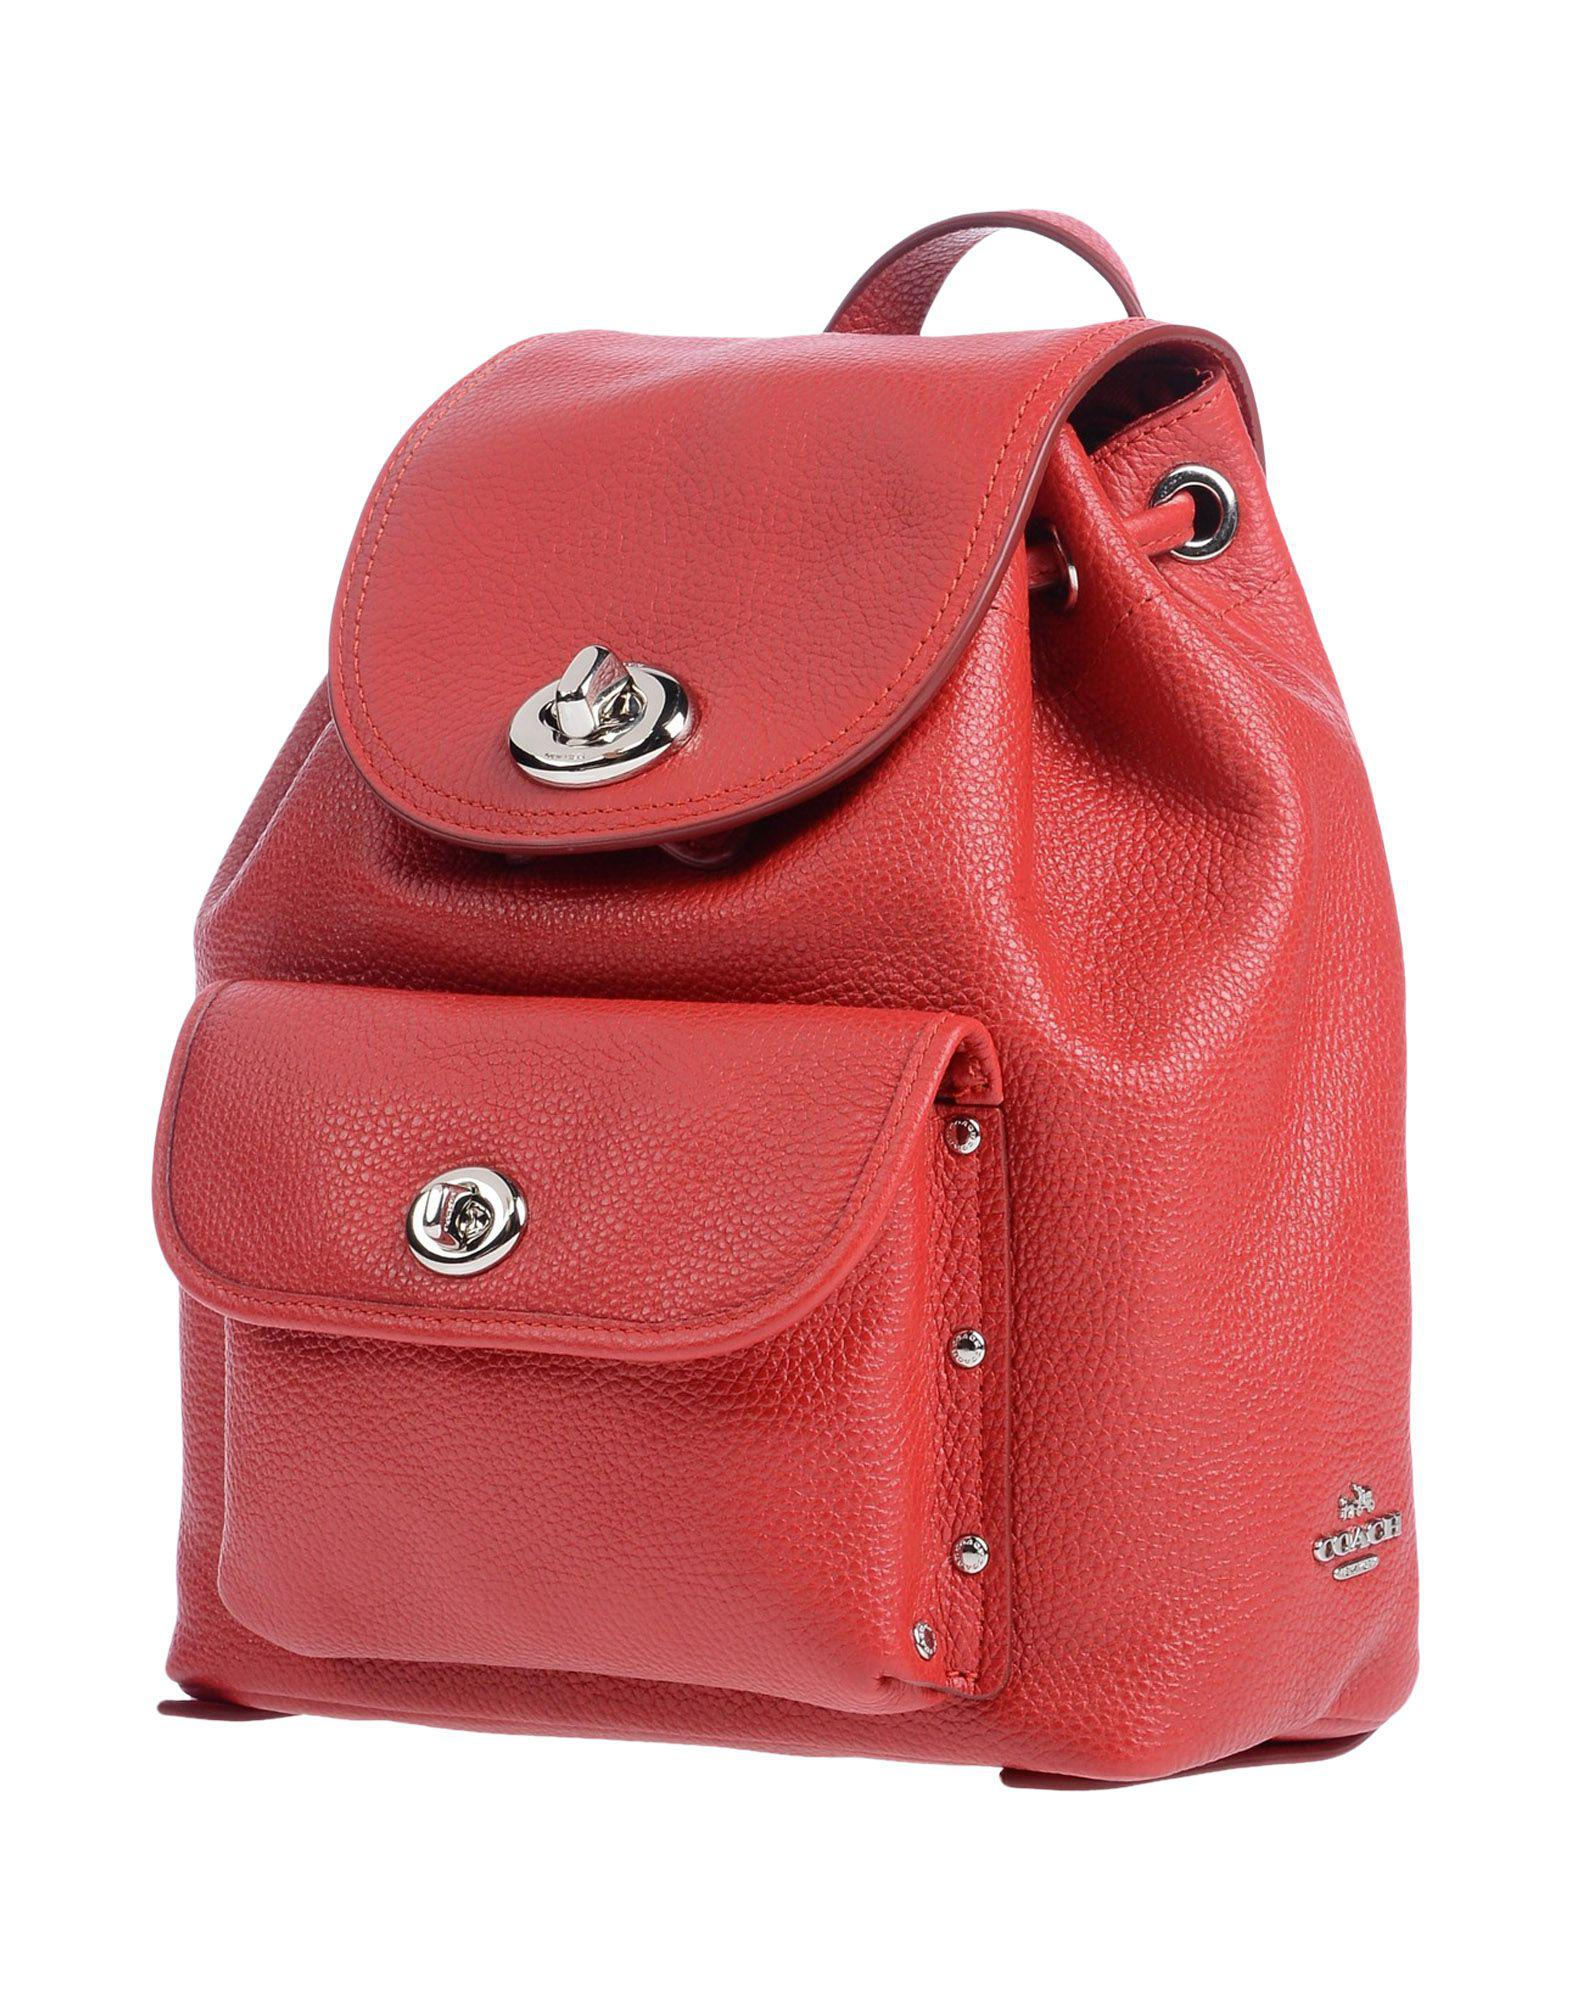 a9acc2615815 ... australia coach. womens red backpacks b94e5 3e96c